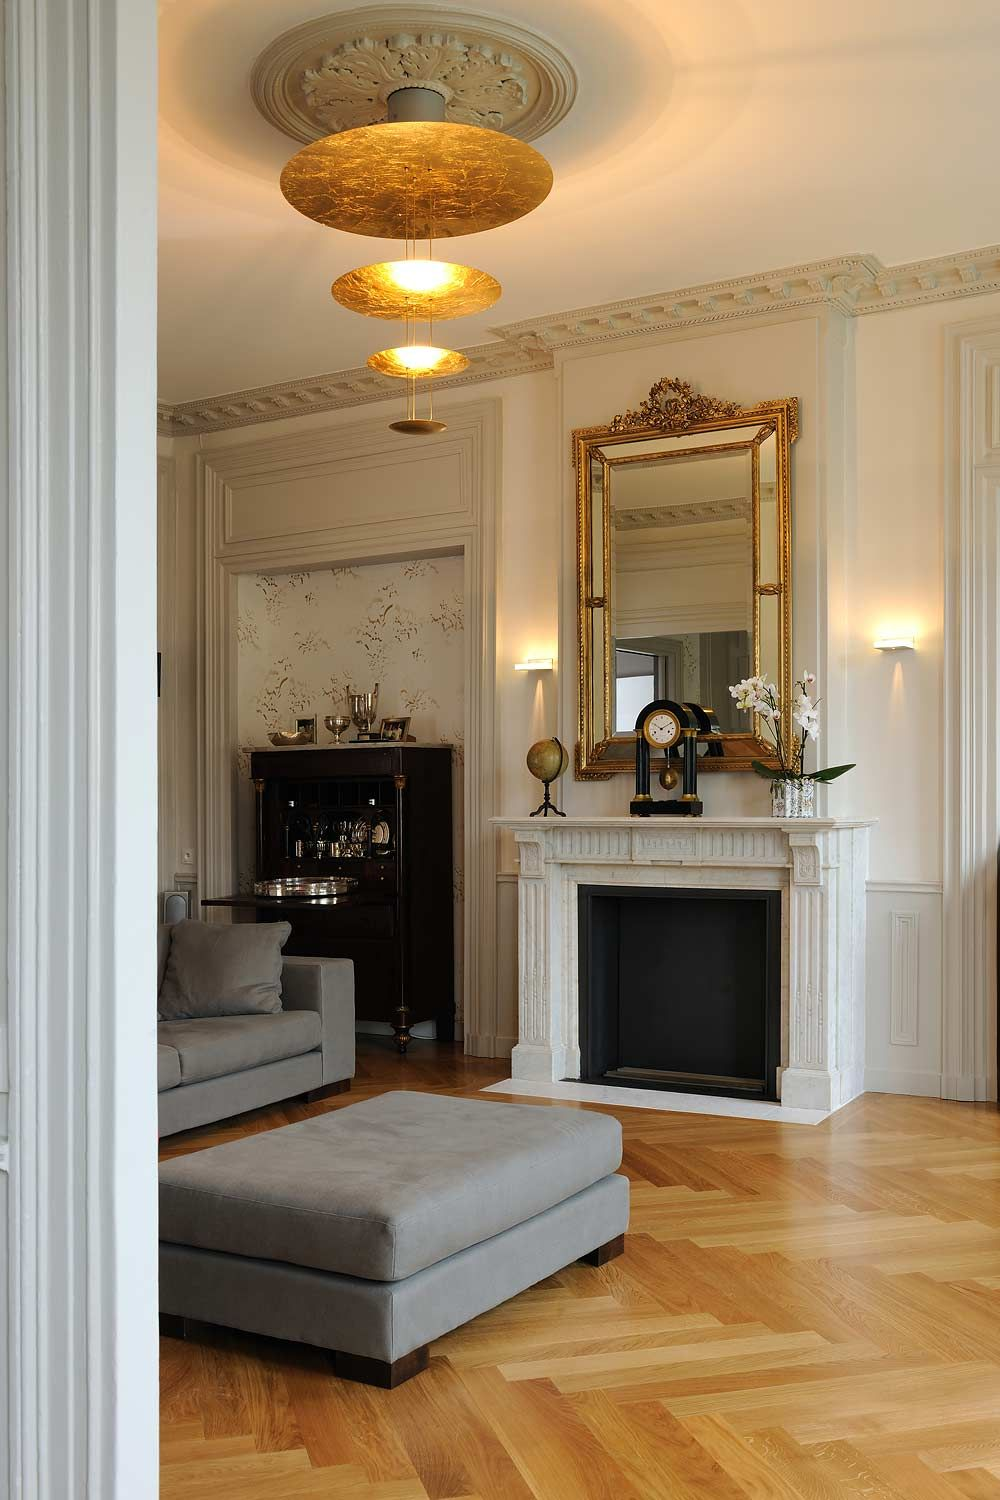 appartement haussmannien lyon architecte d 39 int rieur escalier d coration classique chic. Black Bedroom Furniture Sets. Home Design Ideas